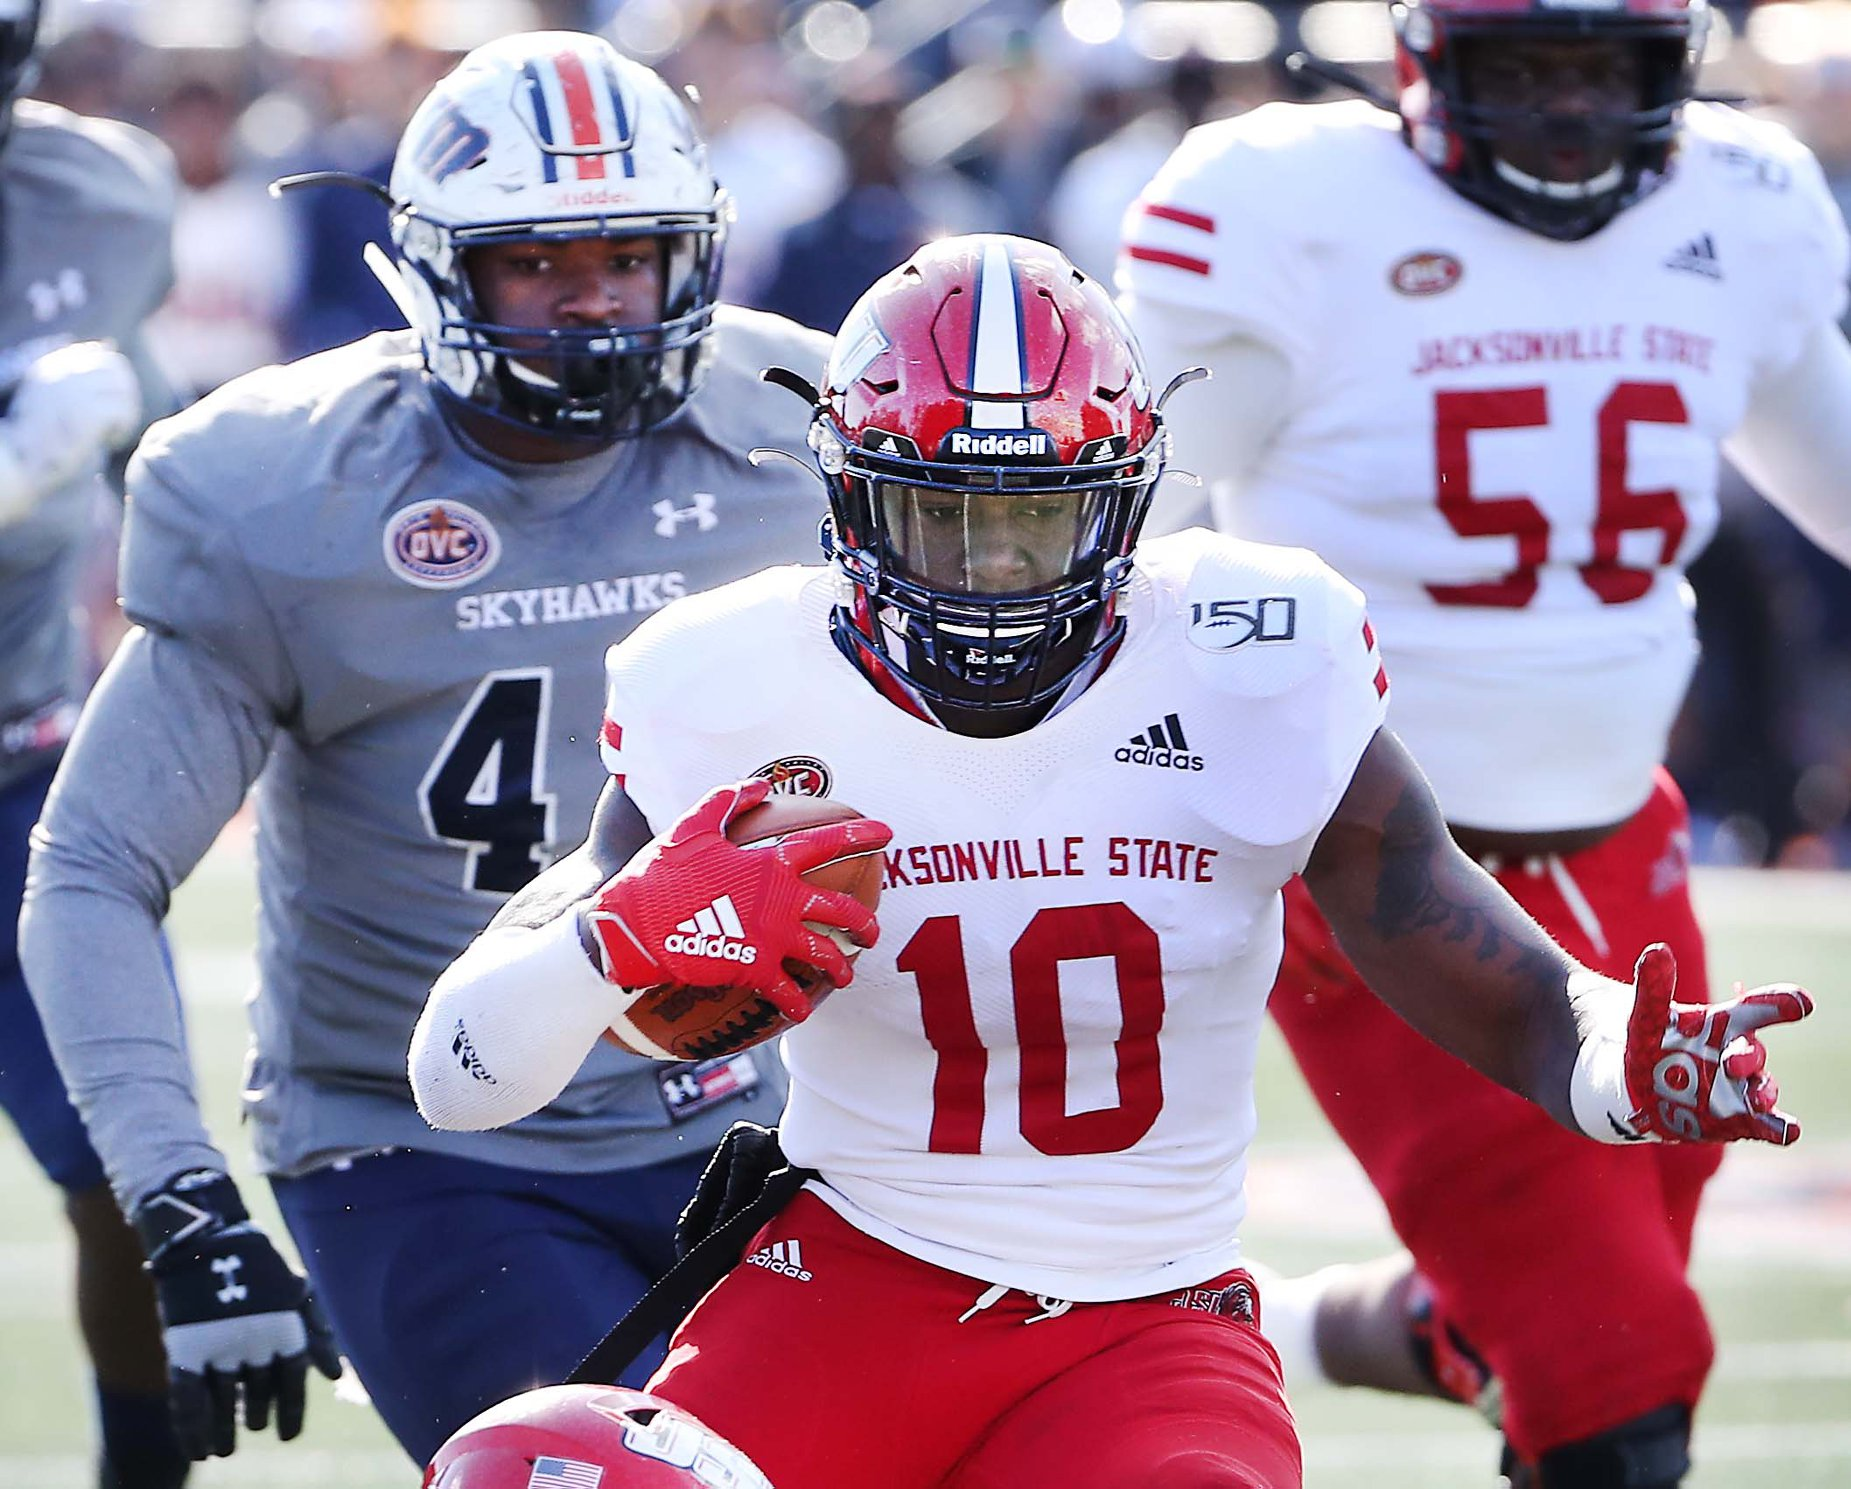 Jacksonville State's Zion Webb gets chased by TN-Martins TJ Jefferson during the JSU at UT Martin OVC football game in Martin, Tennessee. (Courtesy of JSU)